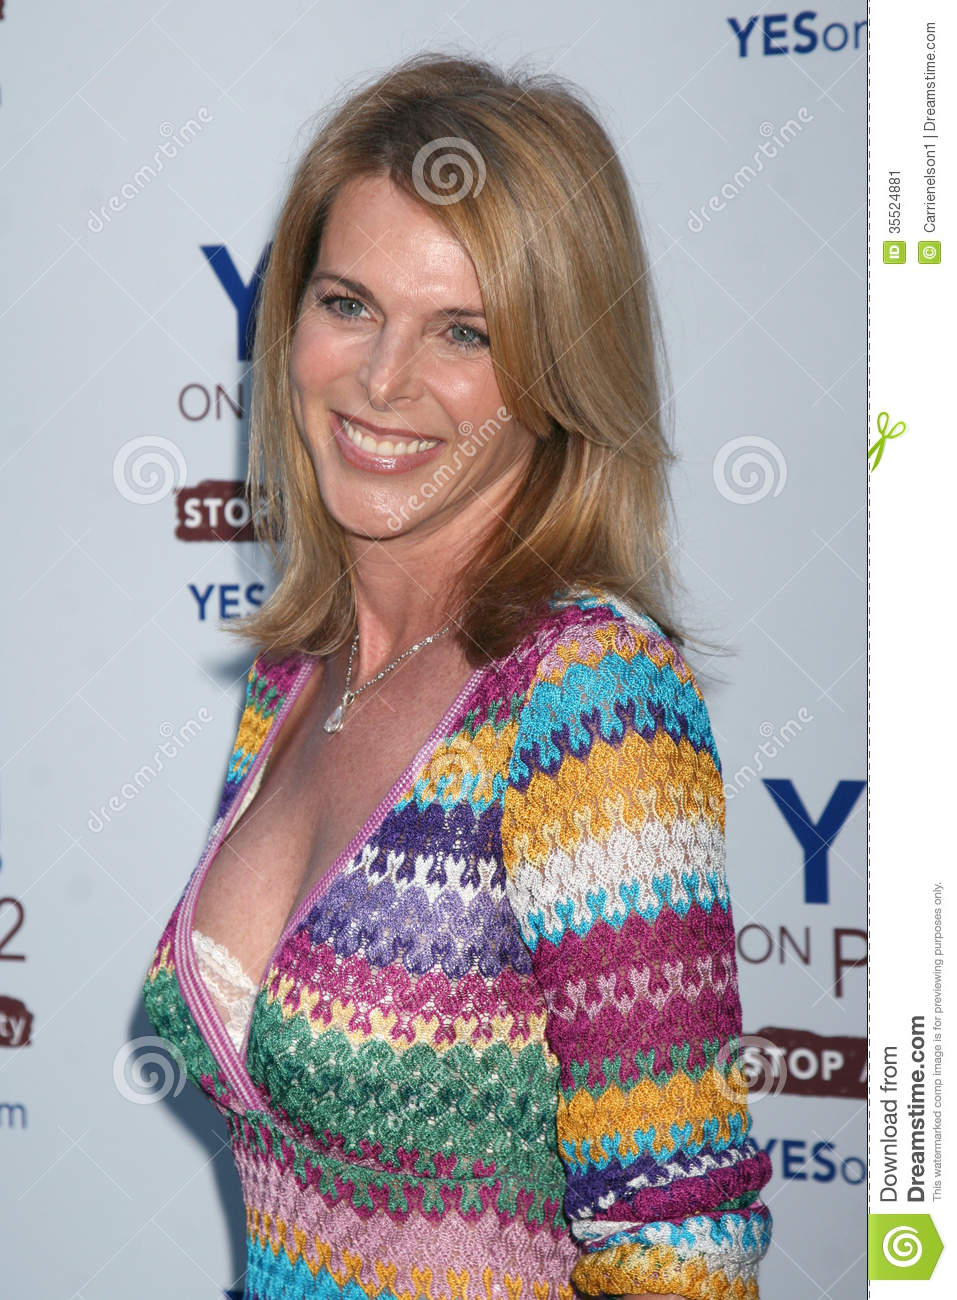 catherine oxenberg hotcatherine oxenberg pictures, catherine oxenberg instagram, catherine oxenberg, catherine oxenberg photos, catherine oxenberg 2014, catherine oxenberg dynasty, catherine oxenberg net worth, catherine oxenberg imdb, catherine oxenberg and casper van dien, catherine oxenberg royal wedding, catherine oxenberg sexology, catherine oxenberg heute, catherine oxenberg time served, catherine oxenberg hot, catherine oxenberg divorce, catherine oxenberg movies